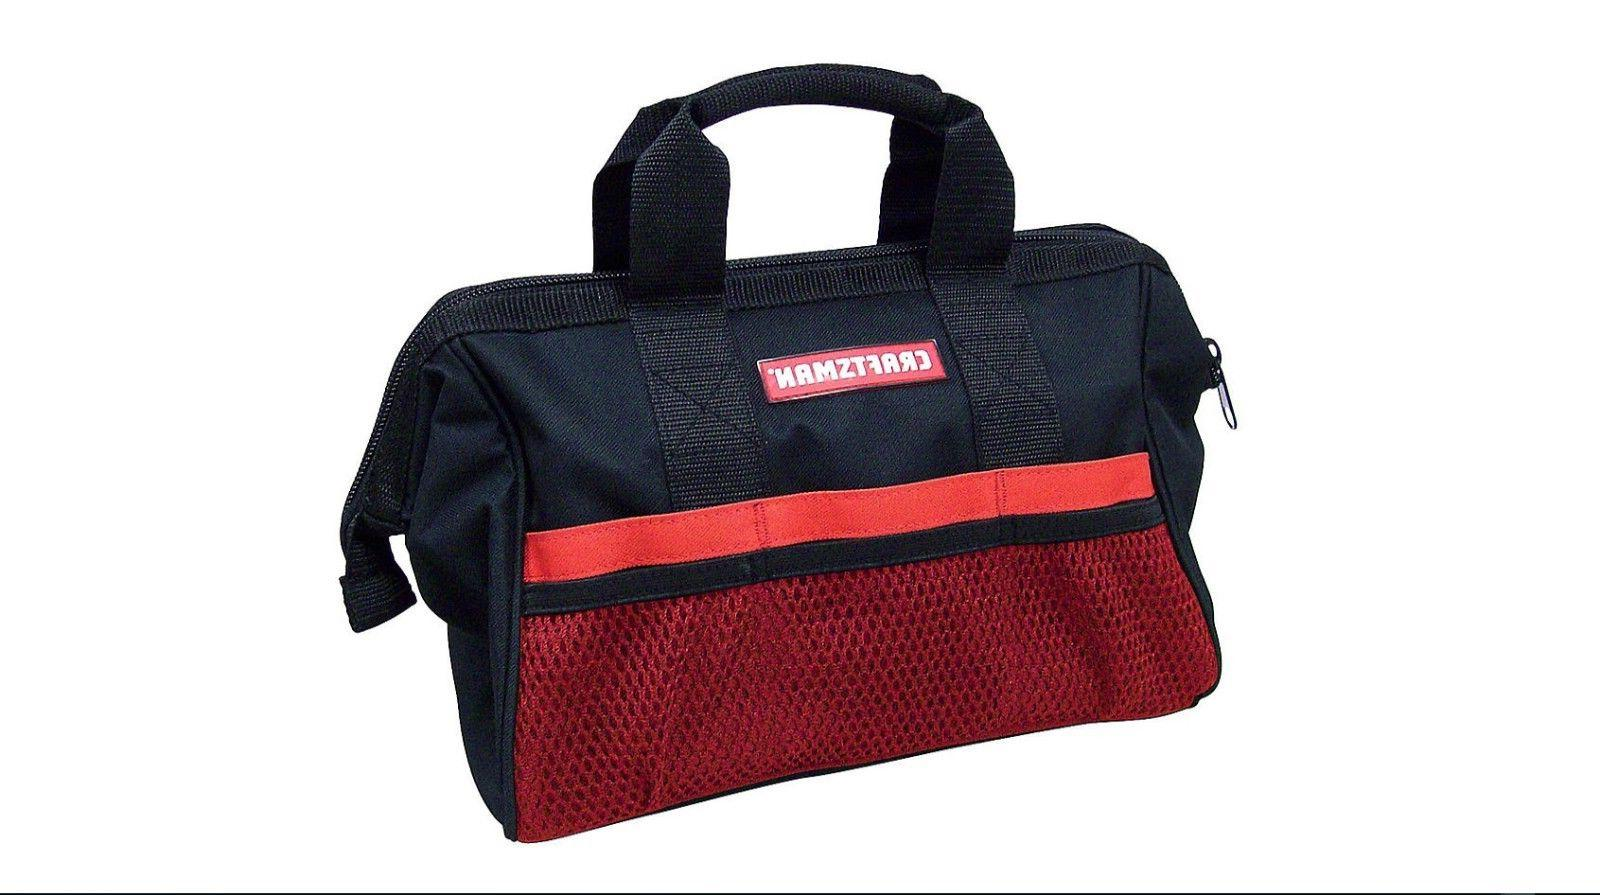 "Craftsman 13"" Large Mouth Tool Bags with Pockets - Brand New"